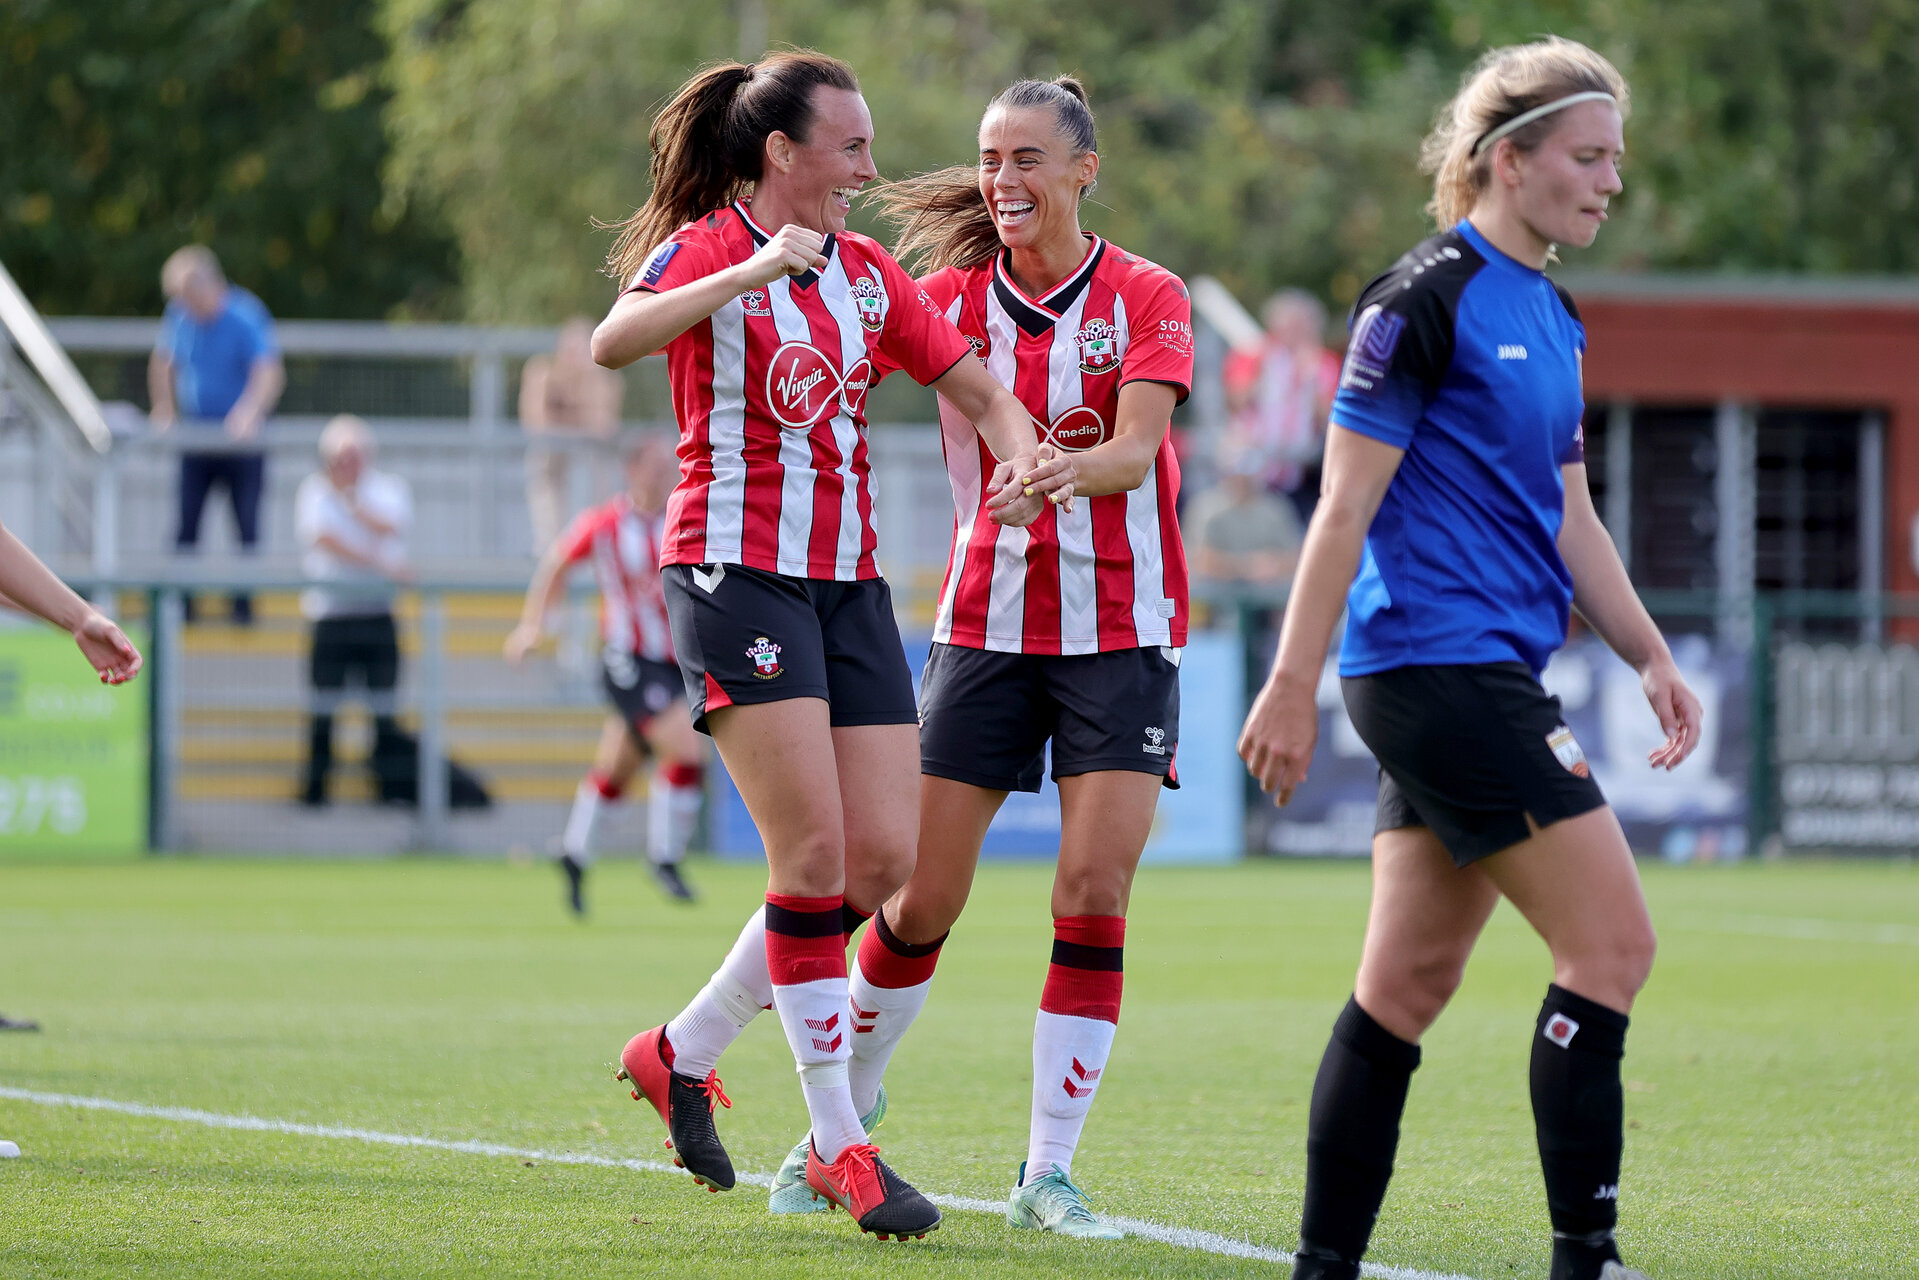 CHELTENHAM, ENGLAND - SEPTEMBER 26: Leeta Rutherford(L) of celebrates scoring with Laura Rafferty(R) of Southampton during the FA National League Southern Premier match between   Southampton Women and London Bees at The Snows Stadium on September 26, 2021 in  Cheltenham, England. (Photo by Isabelle Field/Southampton FC via Getty Images)